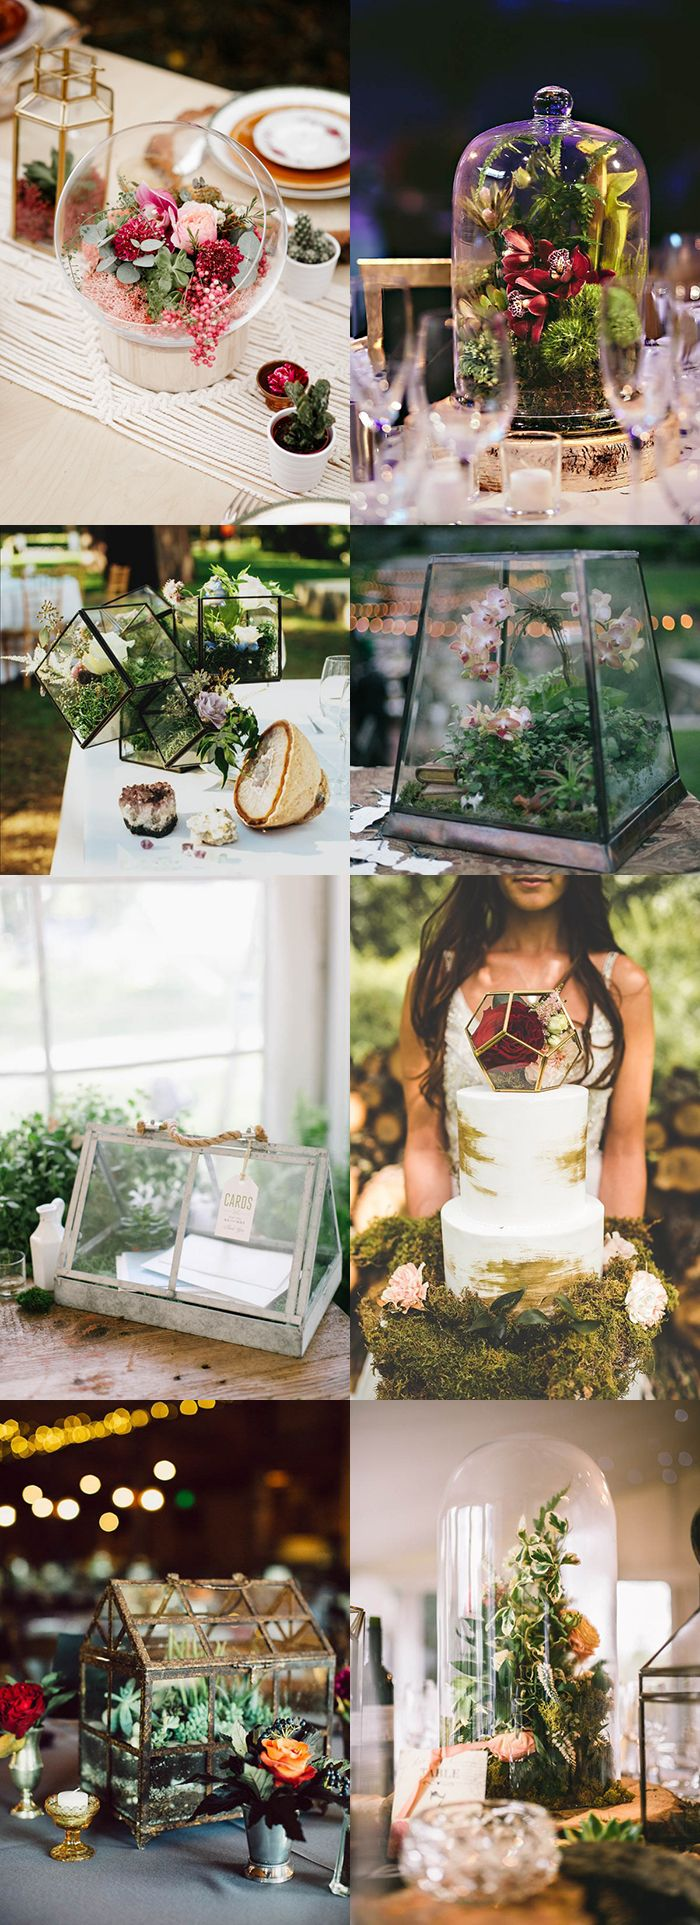 5 diy wedding decor trends perfect for any skill level pinterest whether youve got a wedding designer planning every inch of your event or youre doing it yourself these diy wedding dcor trends personalize your day wh solutioingenieria Images